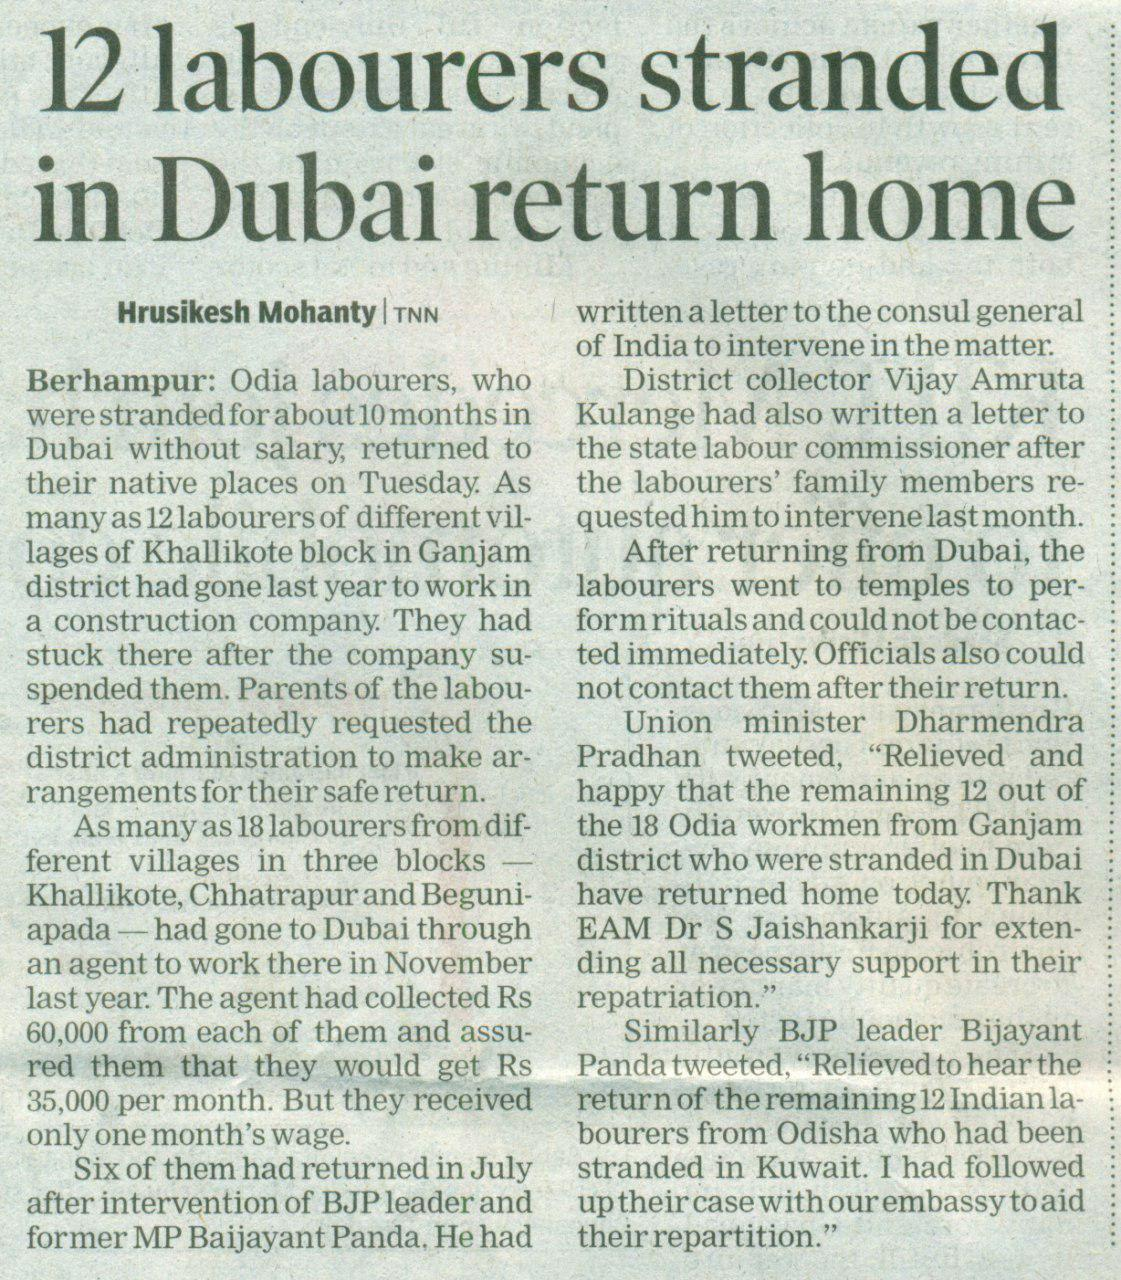 The Times of India, 28.08.19